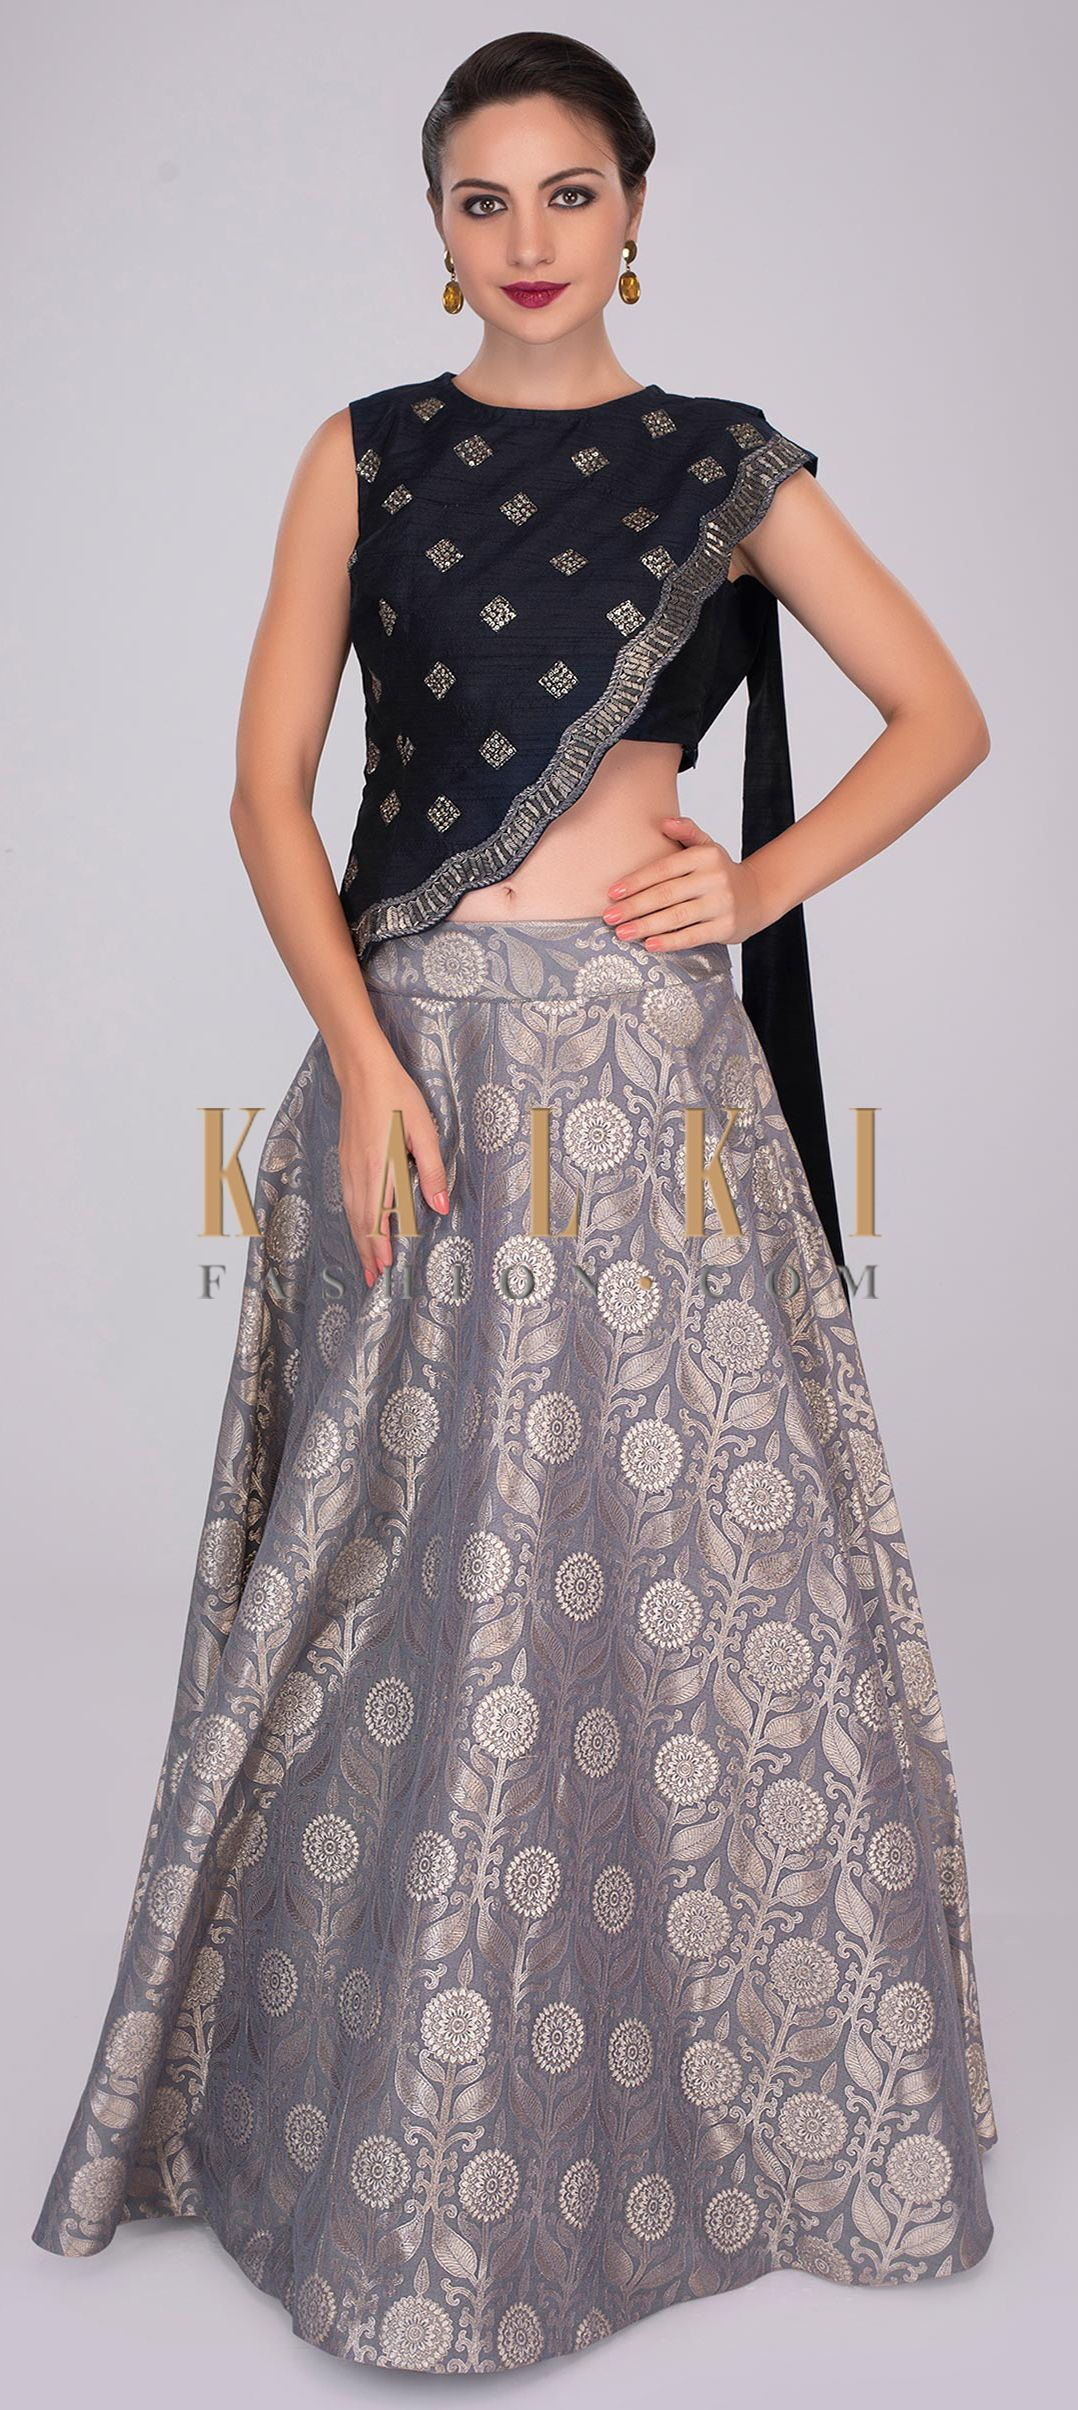 7027c013e1 Long Skirt With Crop Top Buy Online – DACC